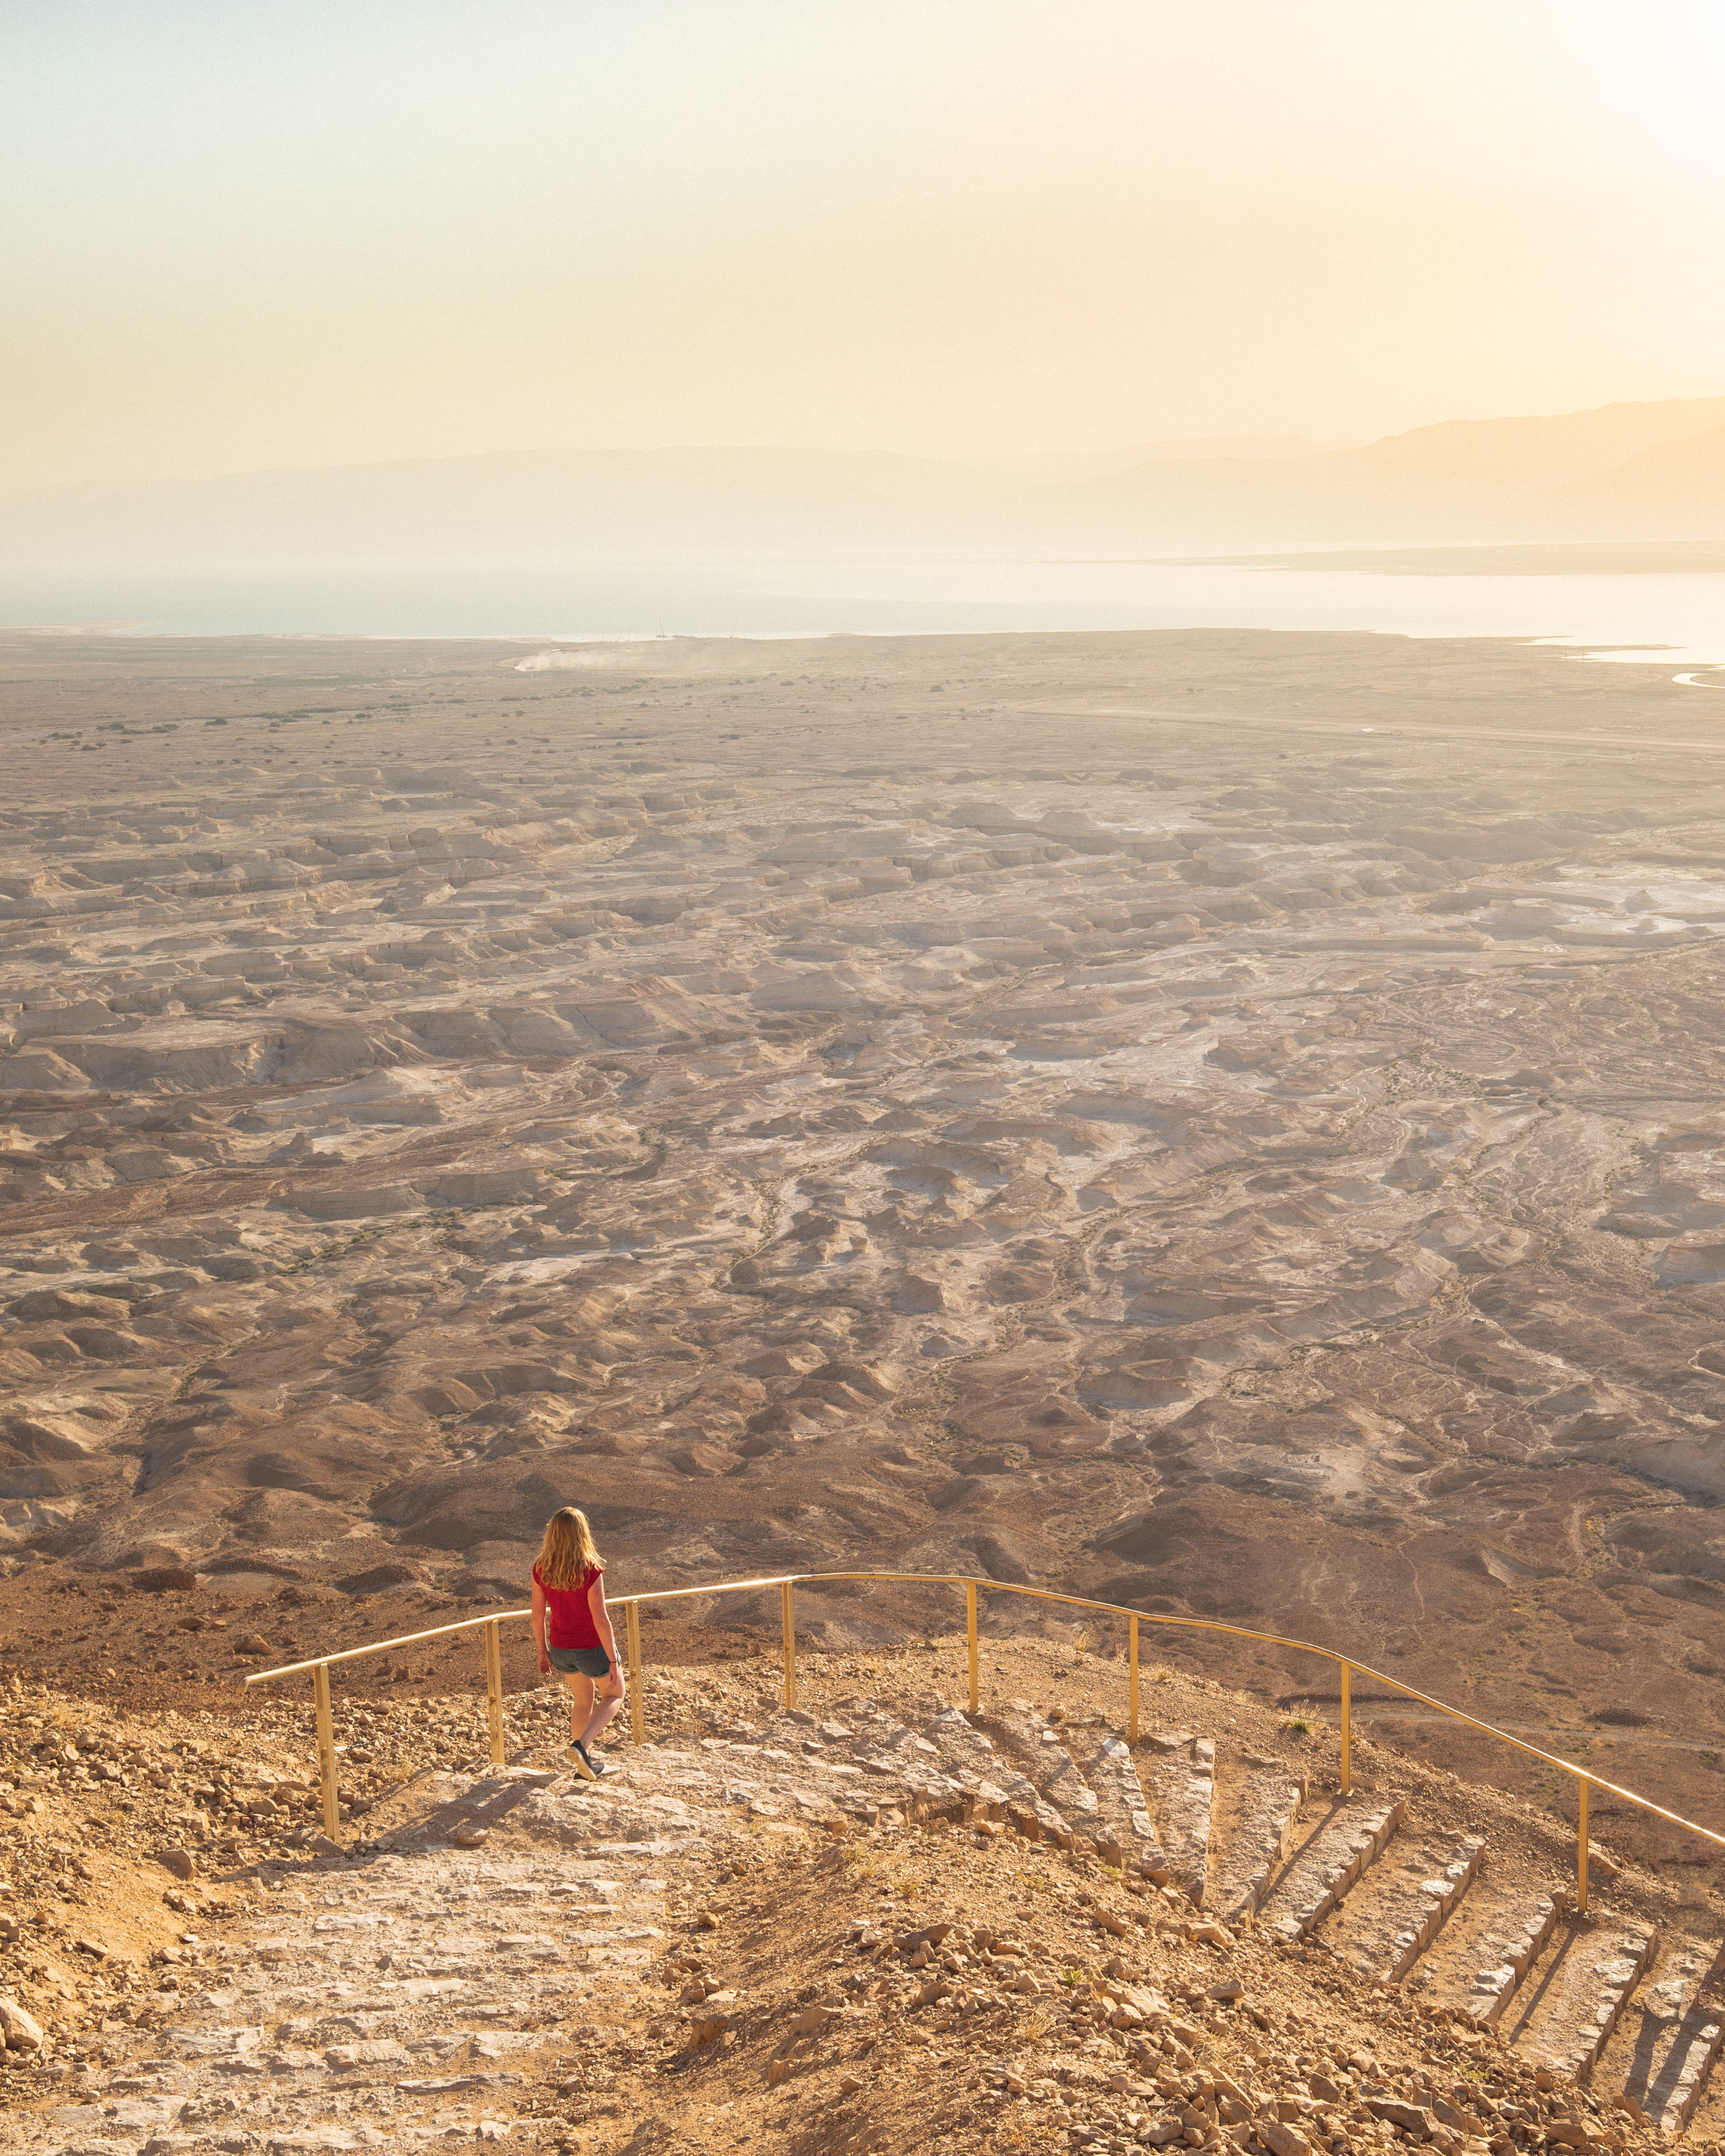 The trail to Masada